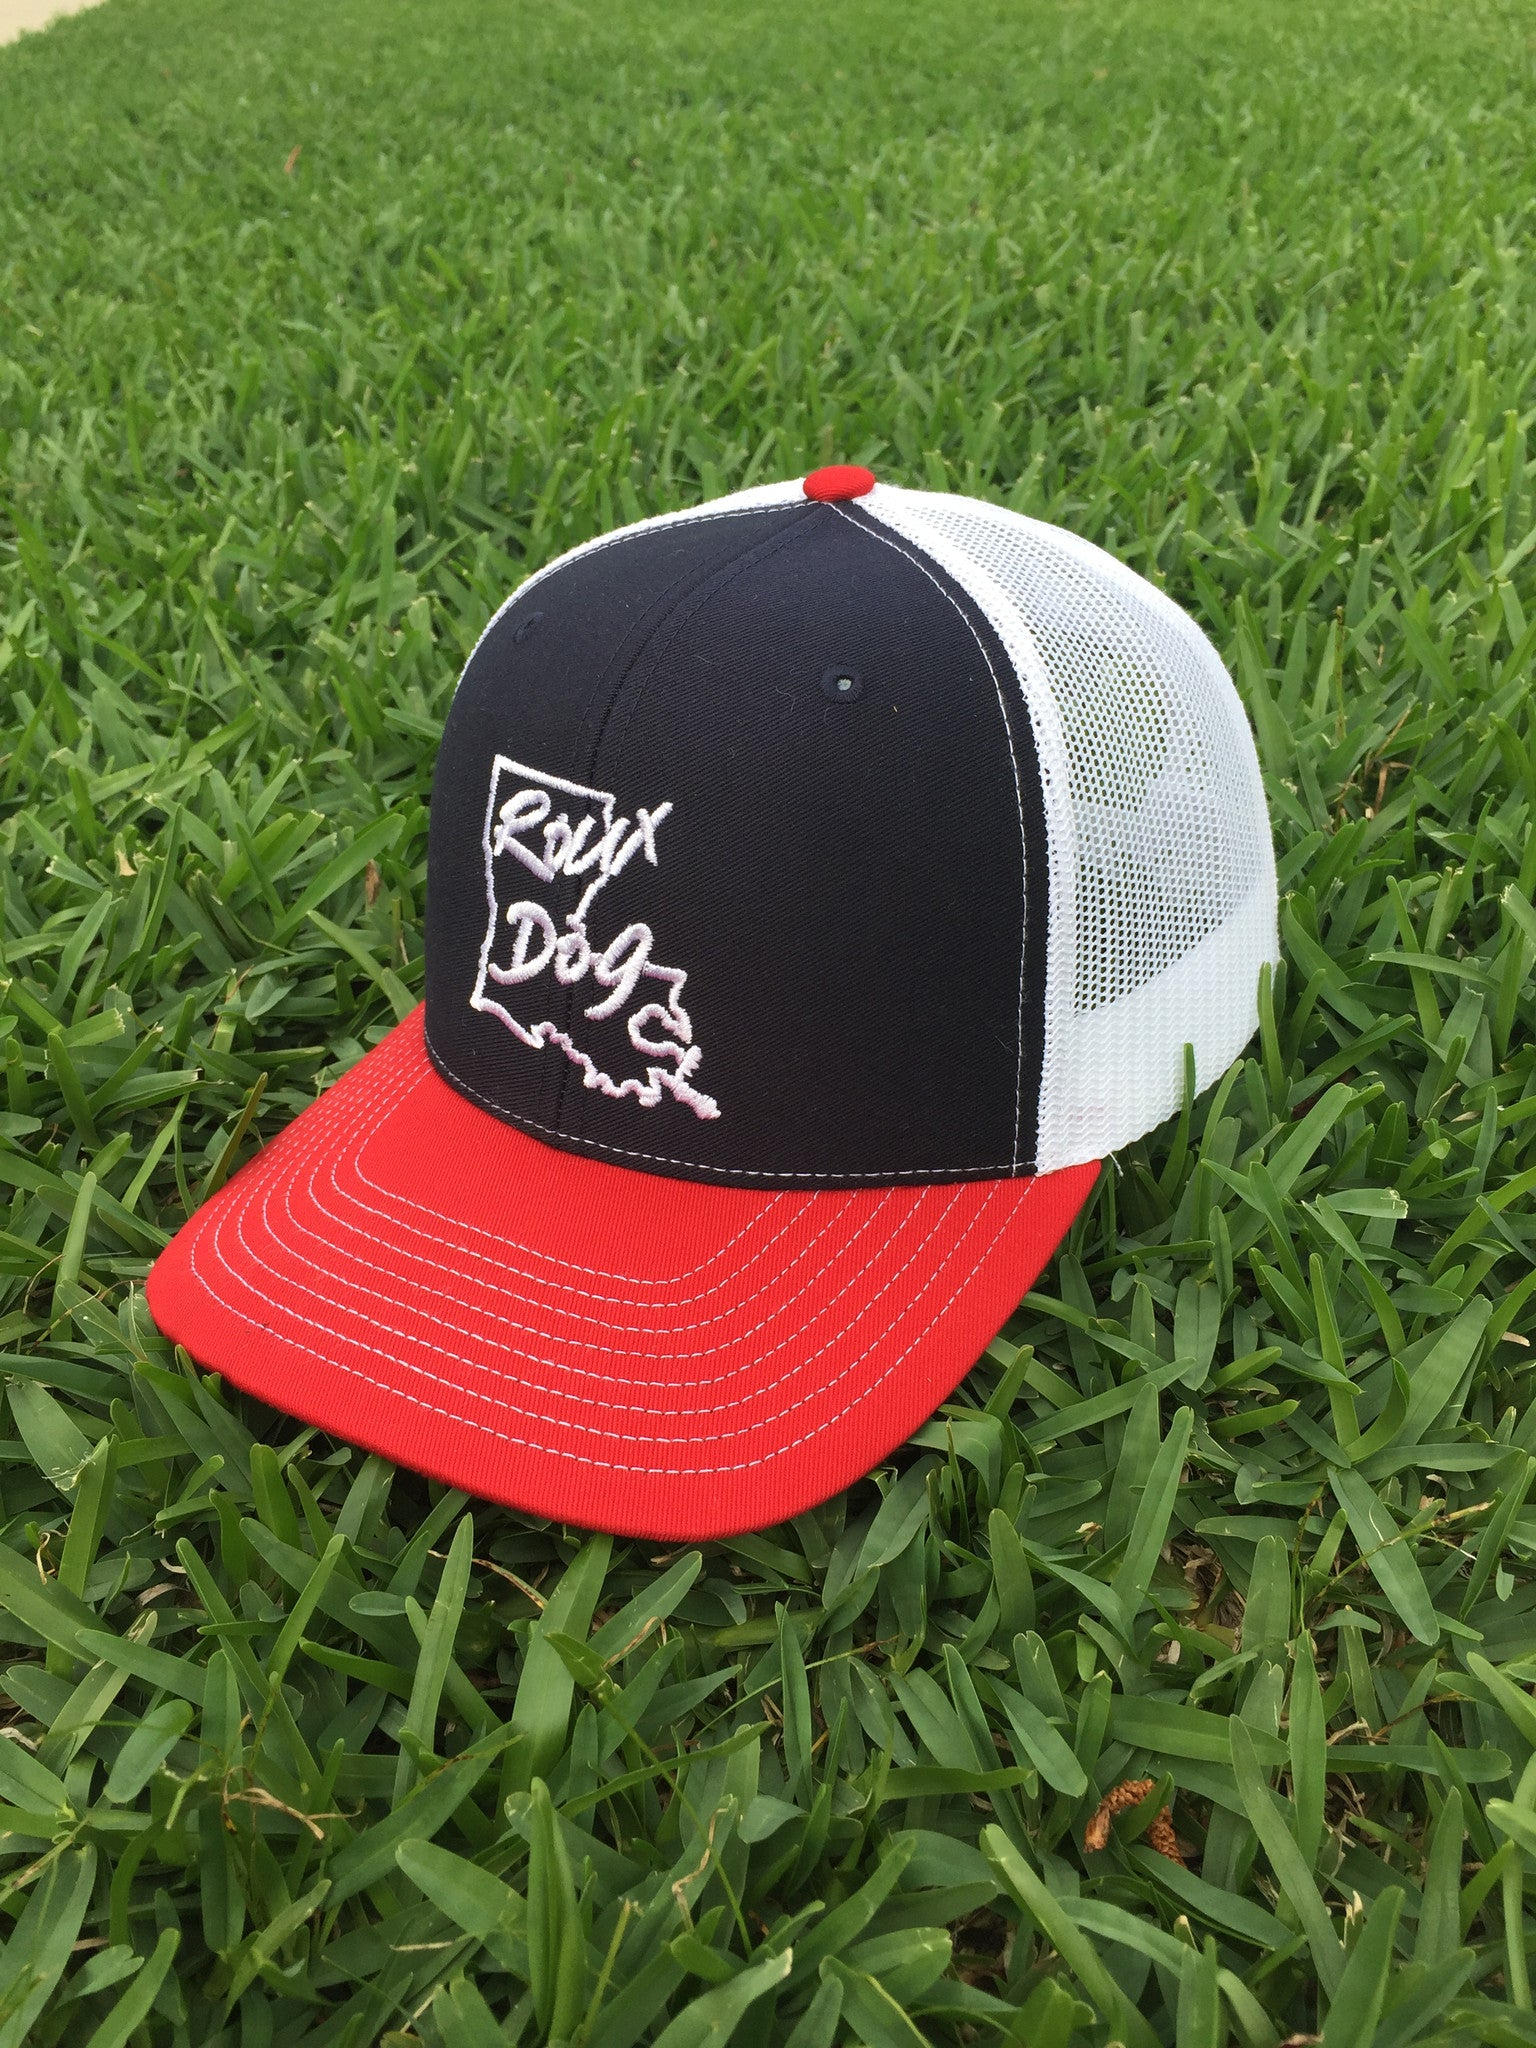 Roux Dog Logo Mesh Back Cap -- Navy/White/Red